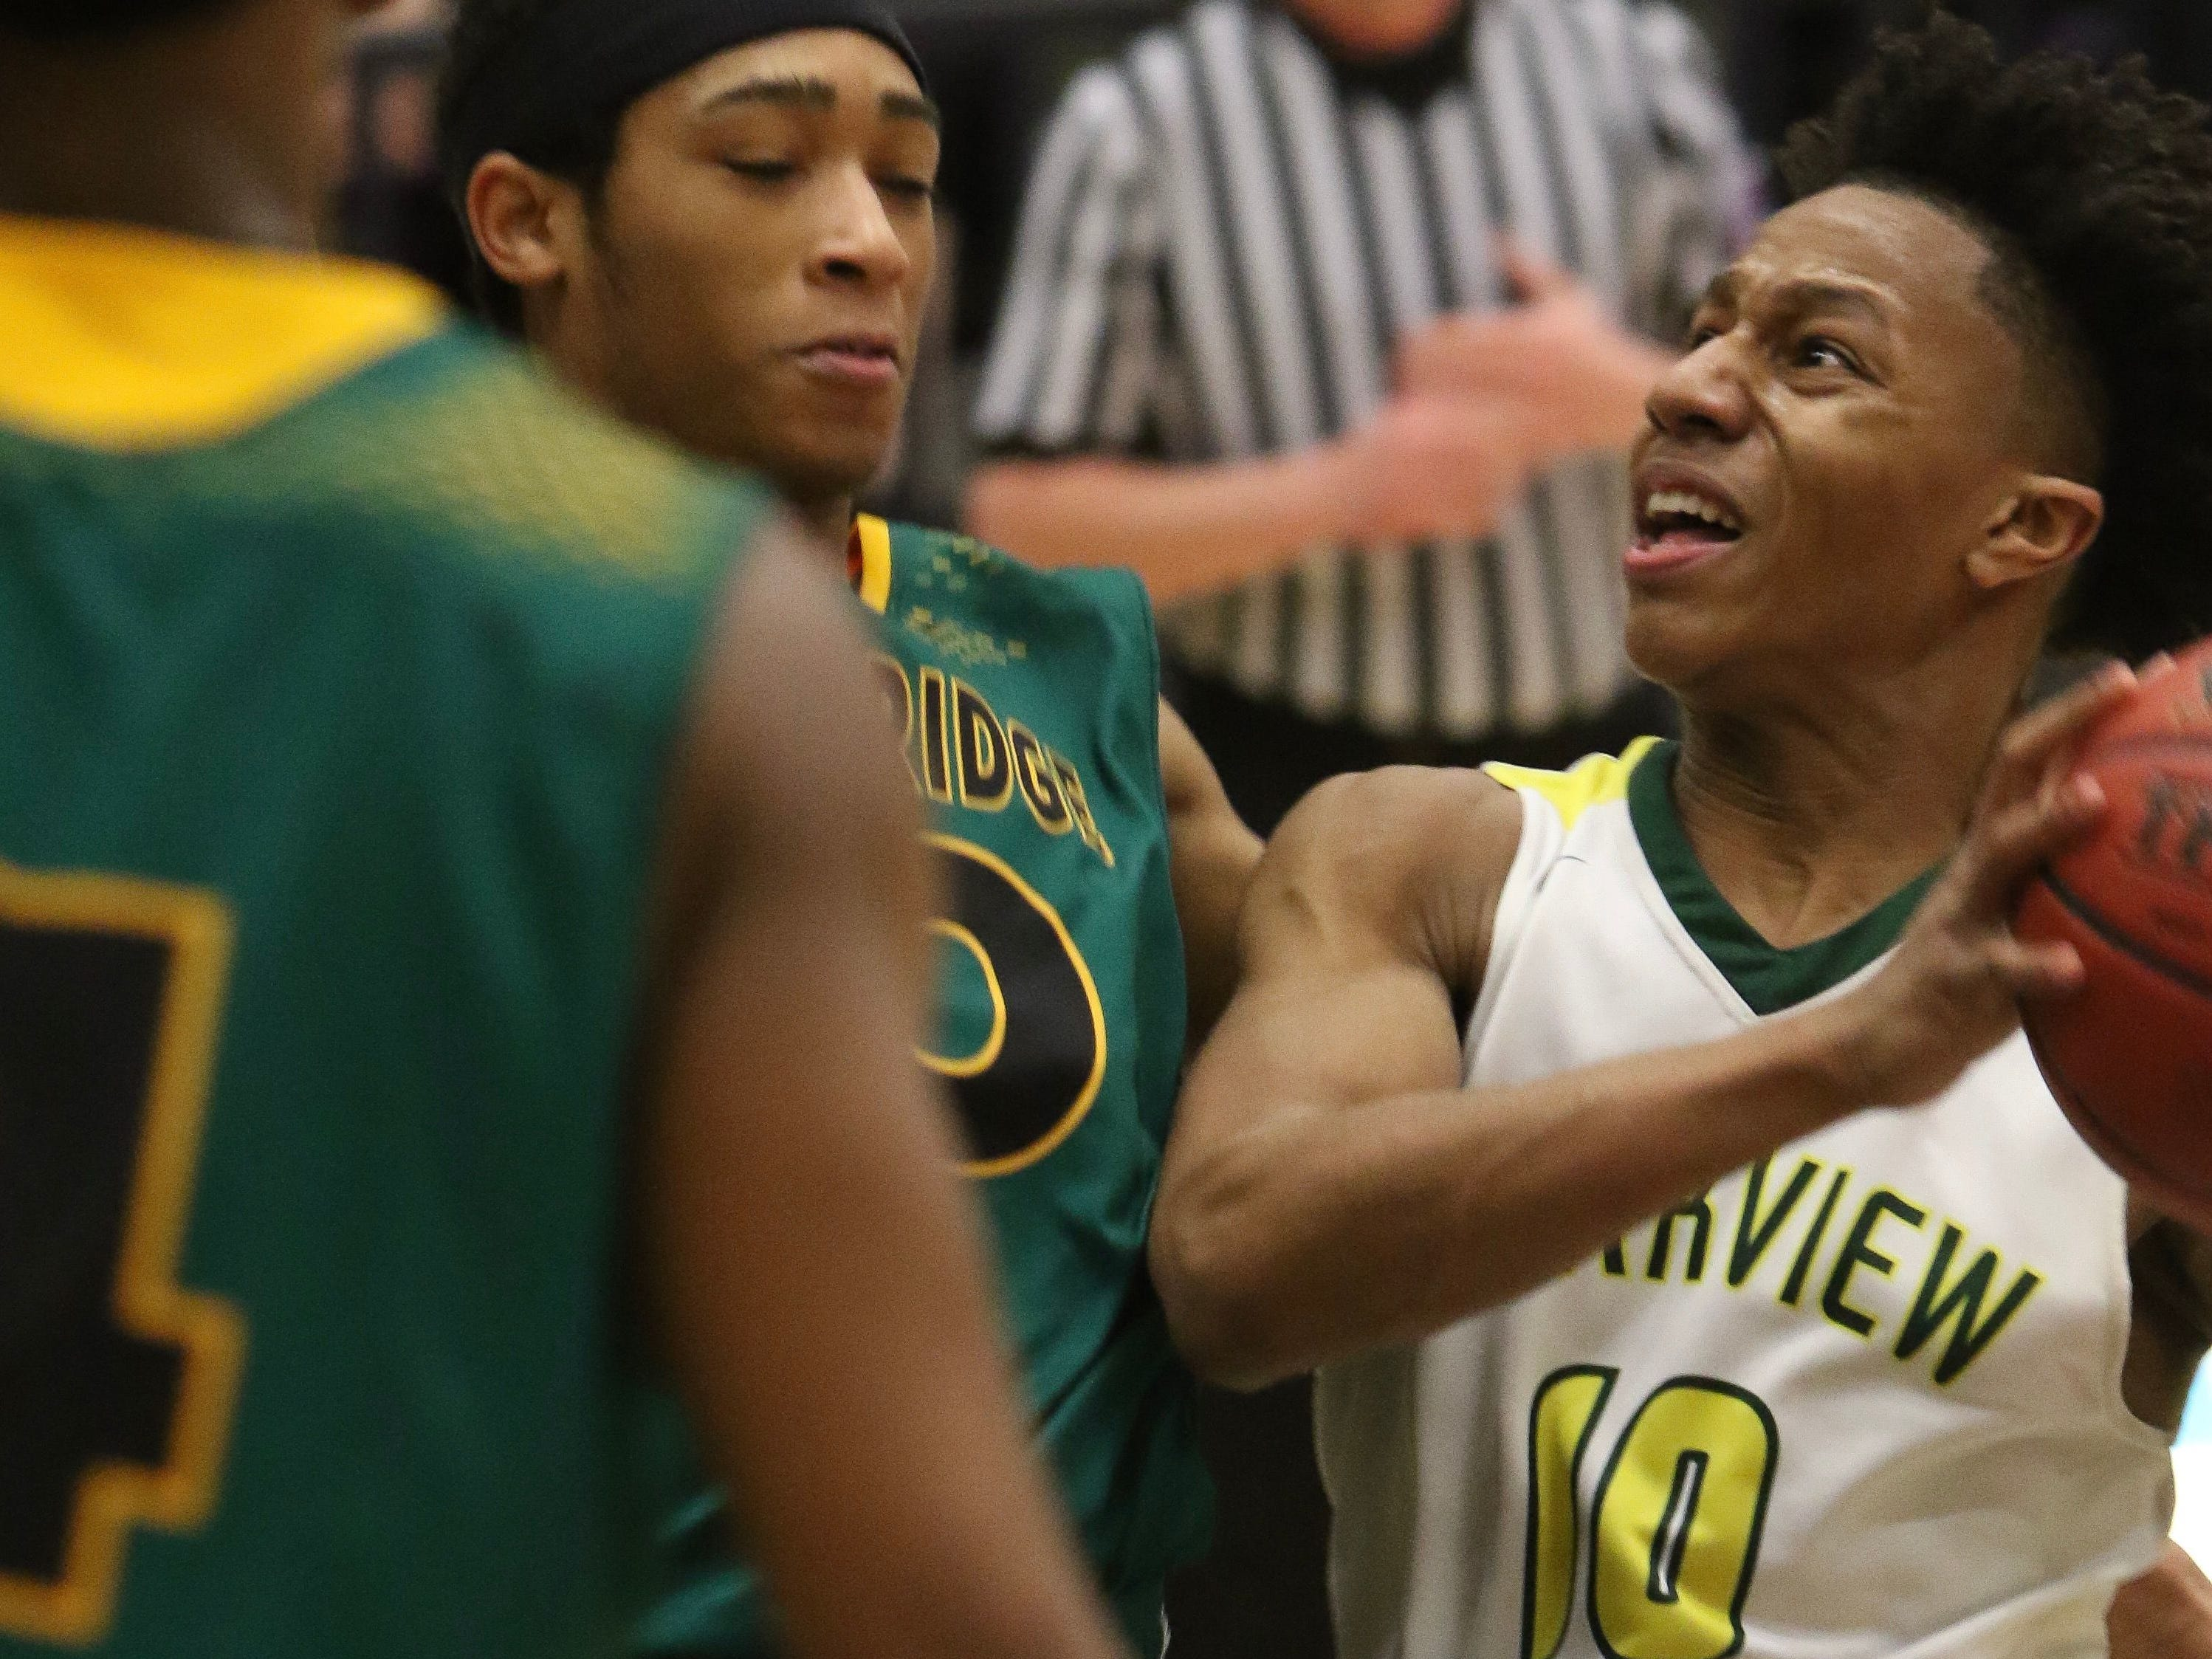 March 10: Parkview High School's historic season comes to an end.